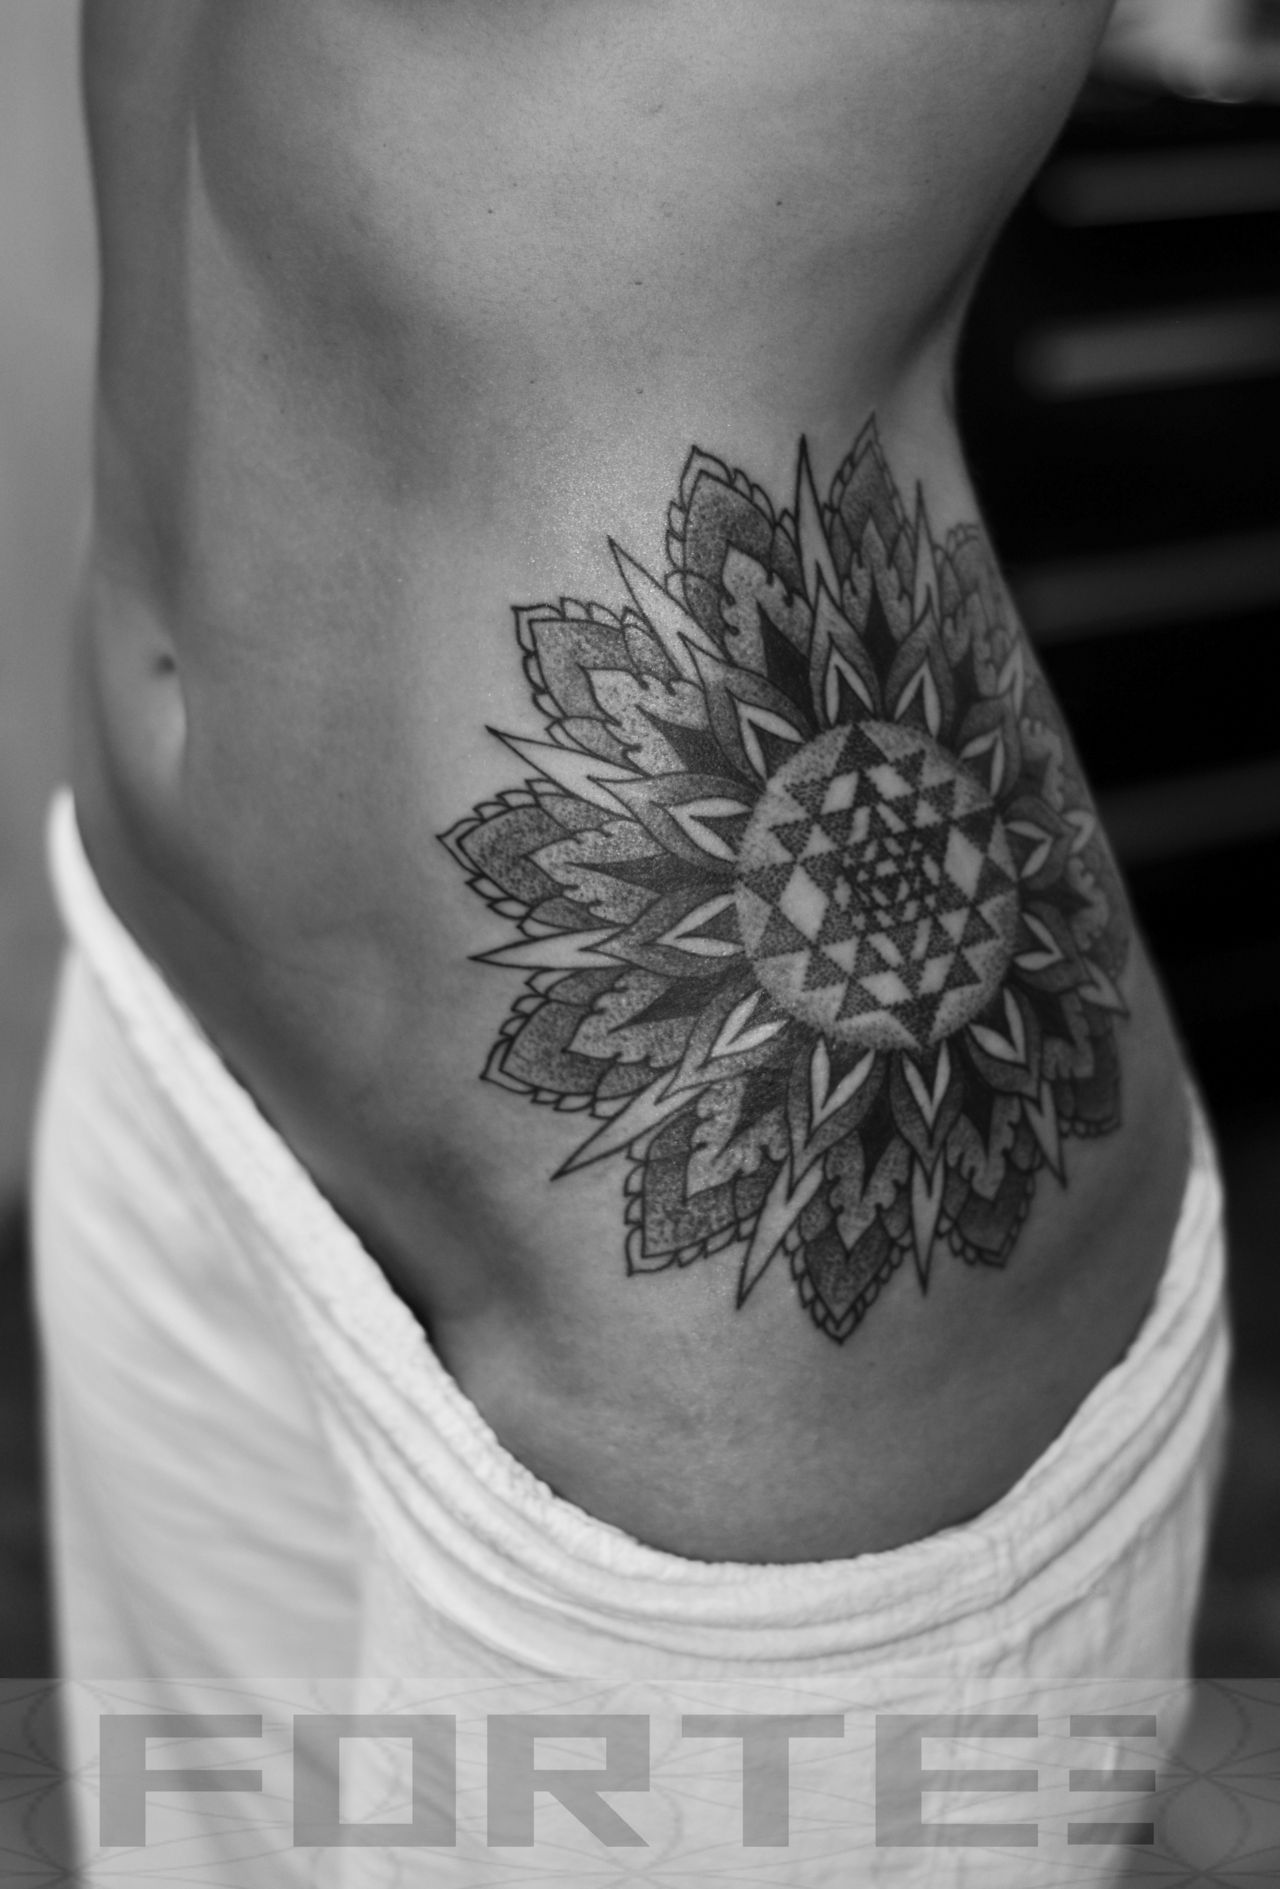 Tattoo ideas for lower back love the placement  tattoos  pinterest  tattoo tatting and piercings